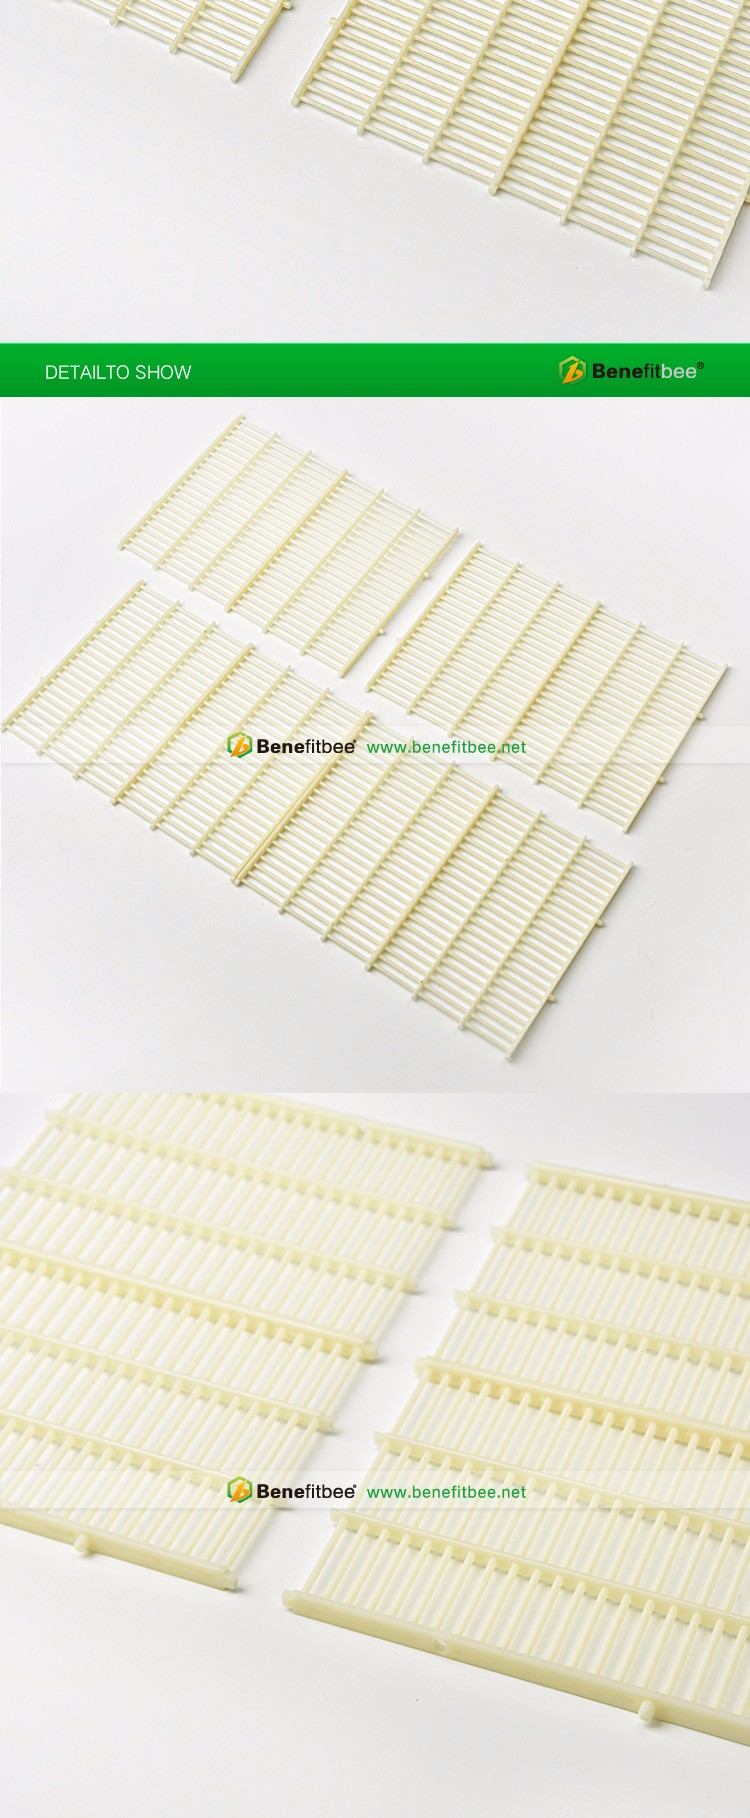 170*225mm bee beehive frame plastic vertical queen excluder